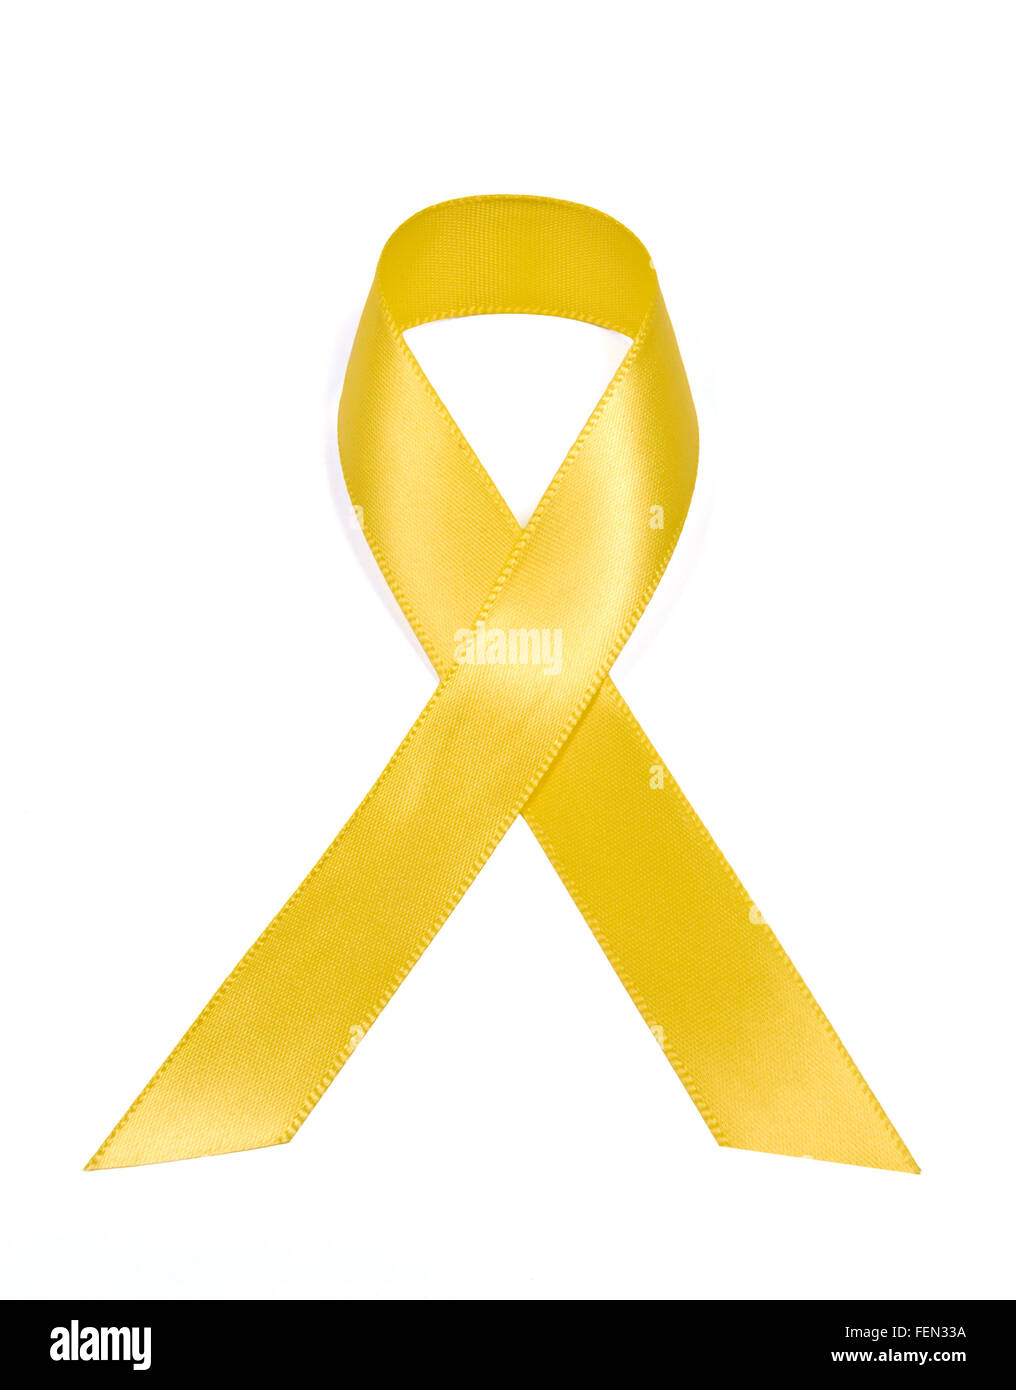 Yellow Support Our Troops Ribbon - Stock Image